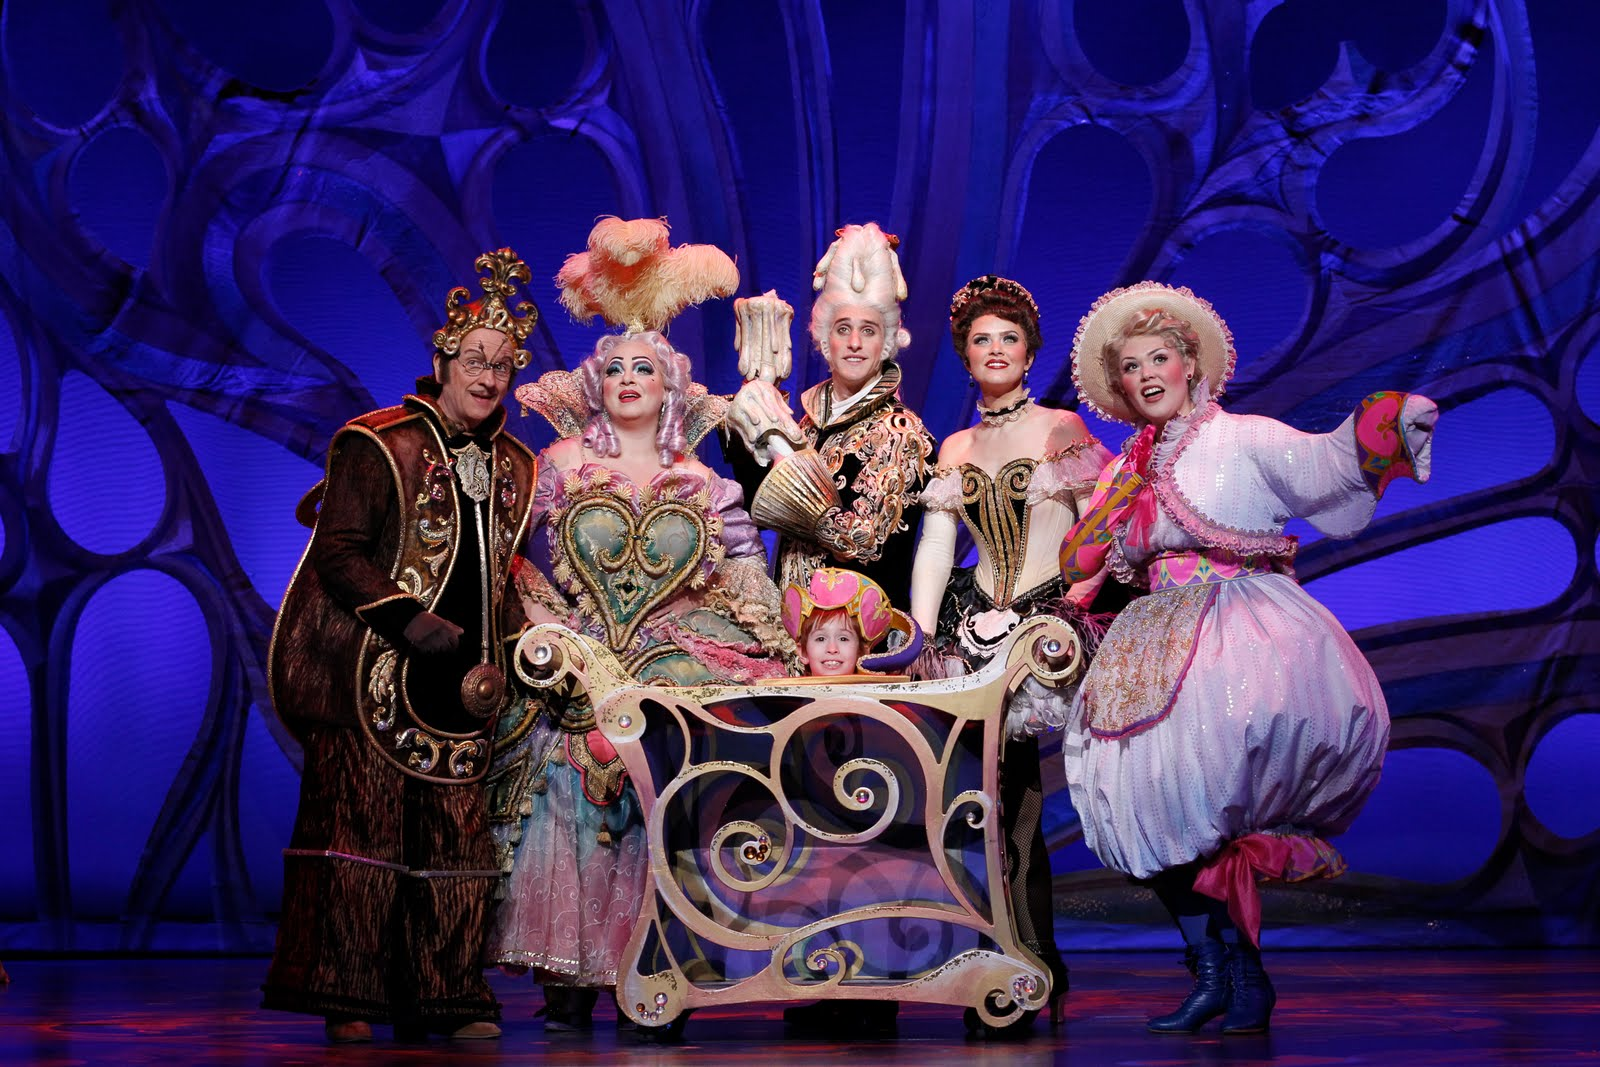 Dwight The Connoisseur Disneys Beauty and the Beast in triumphant return to Broadway in Chicago